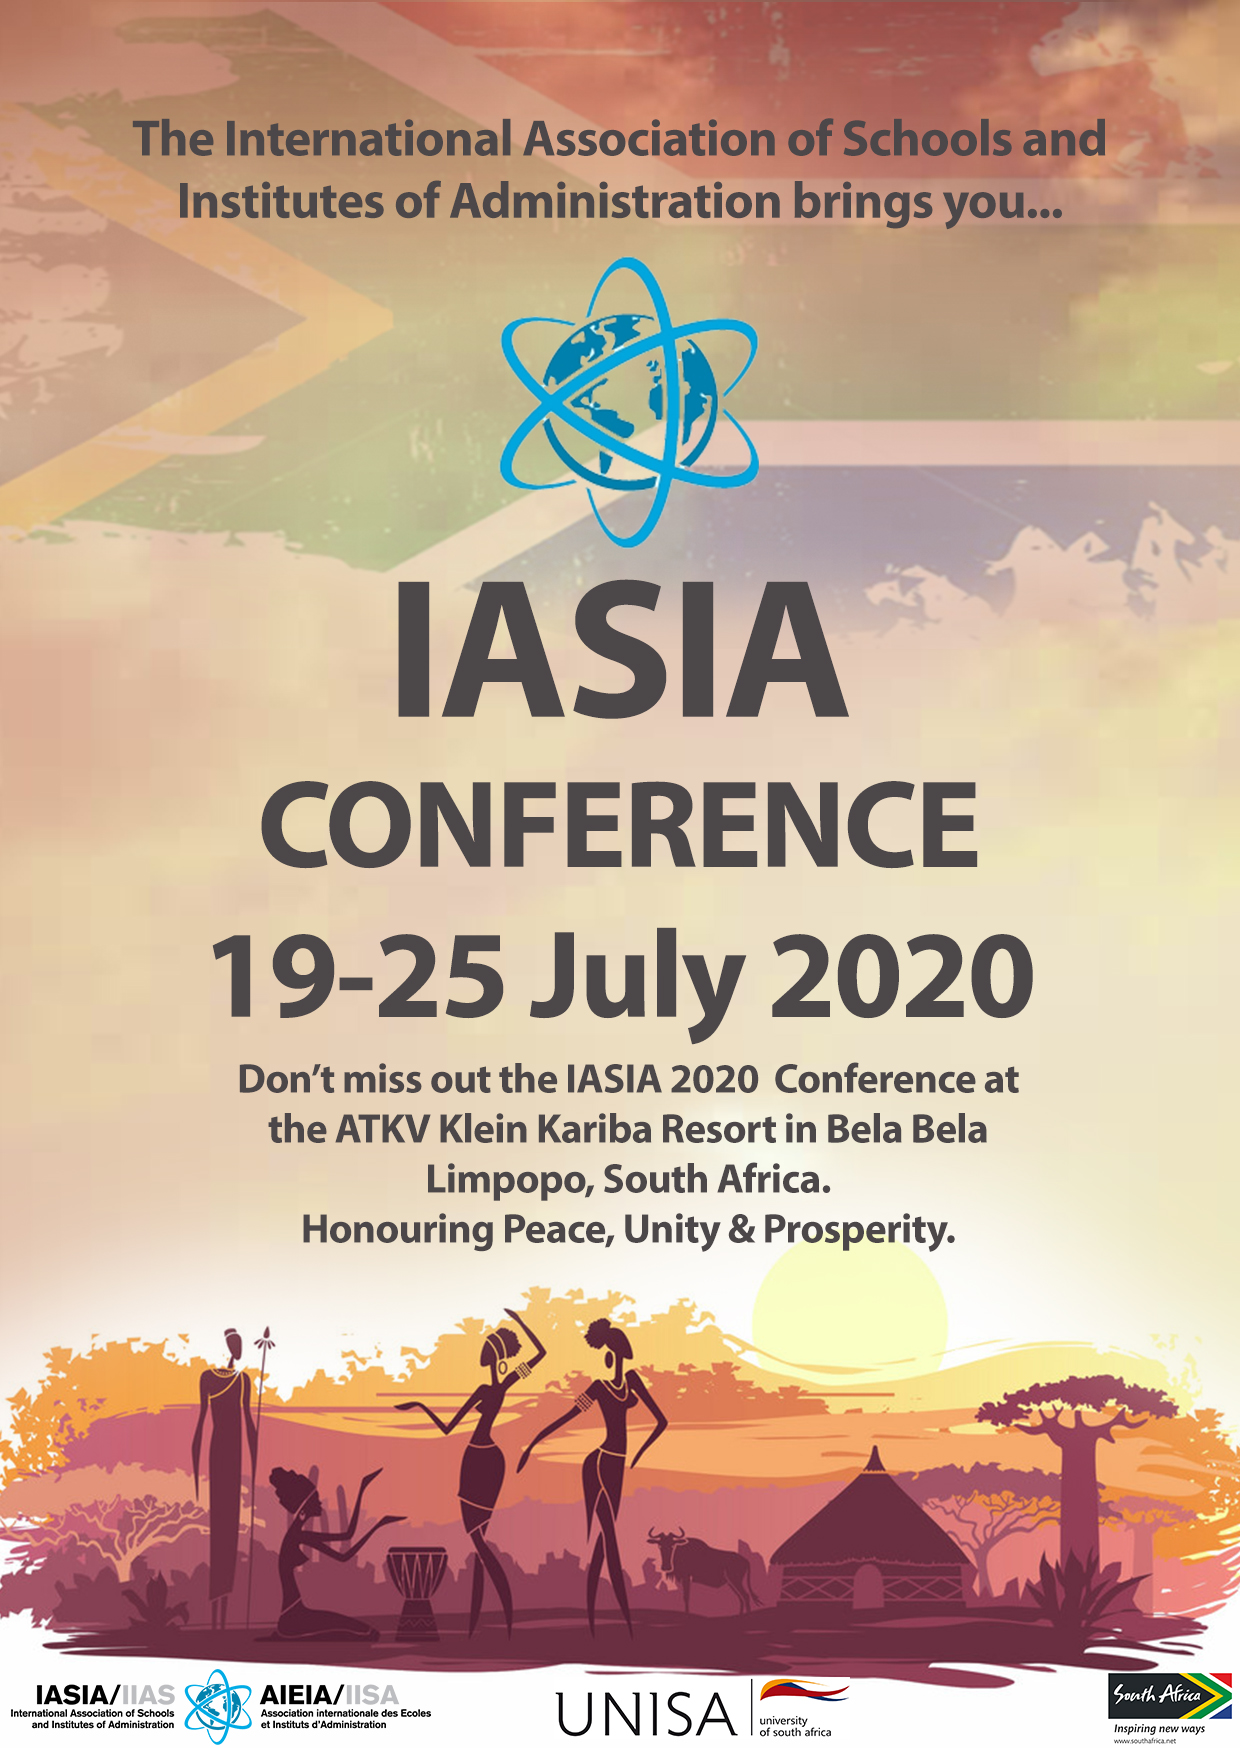 IASIA Conference 2020